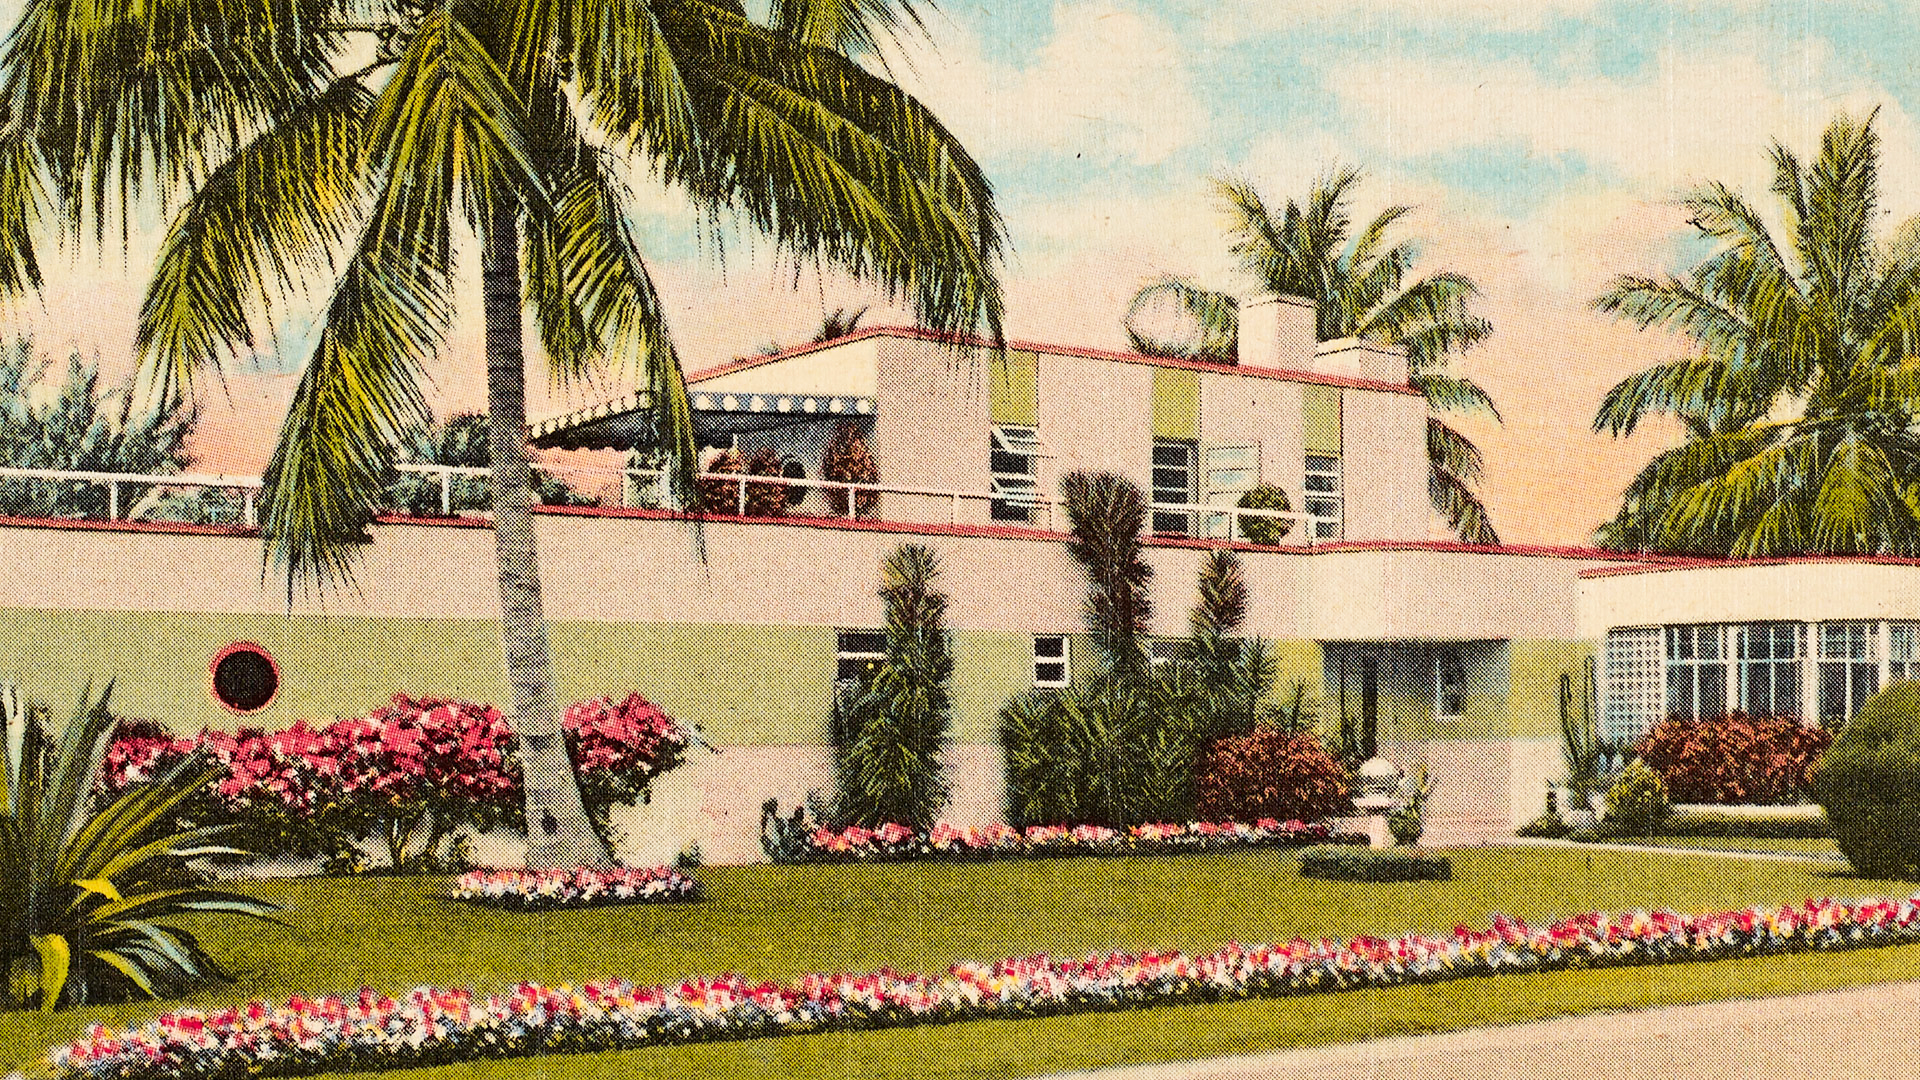 Postcard of a modernistic Miami Beach home